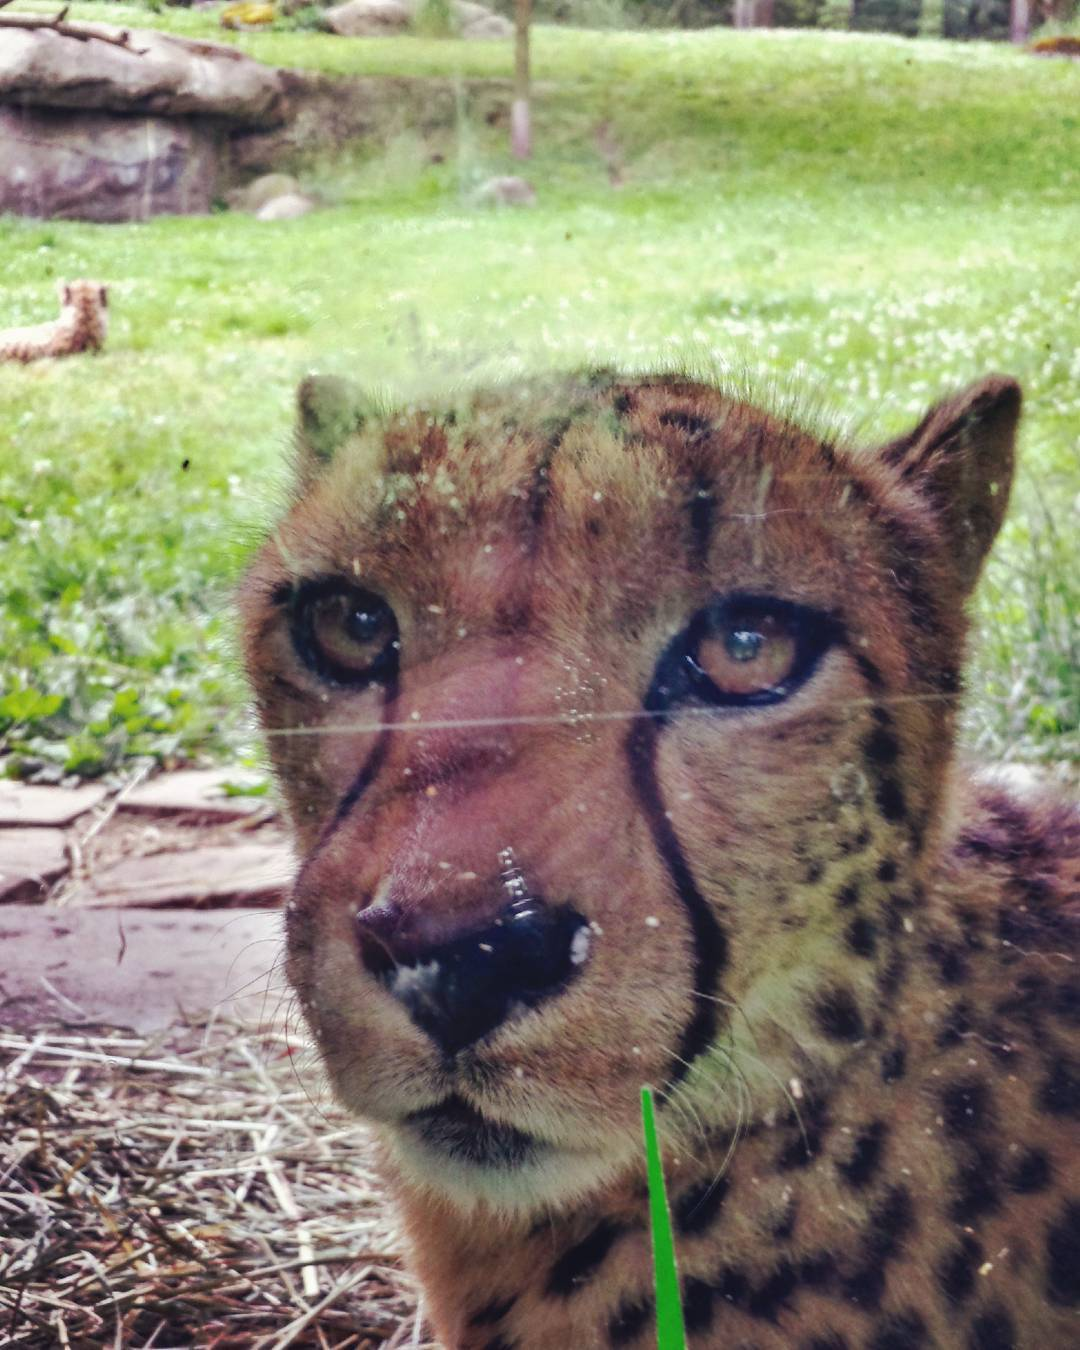 And then the cheetah she turned to look at mehellip